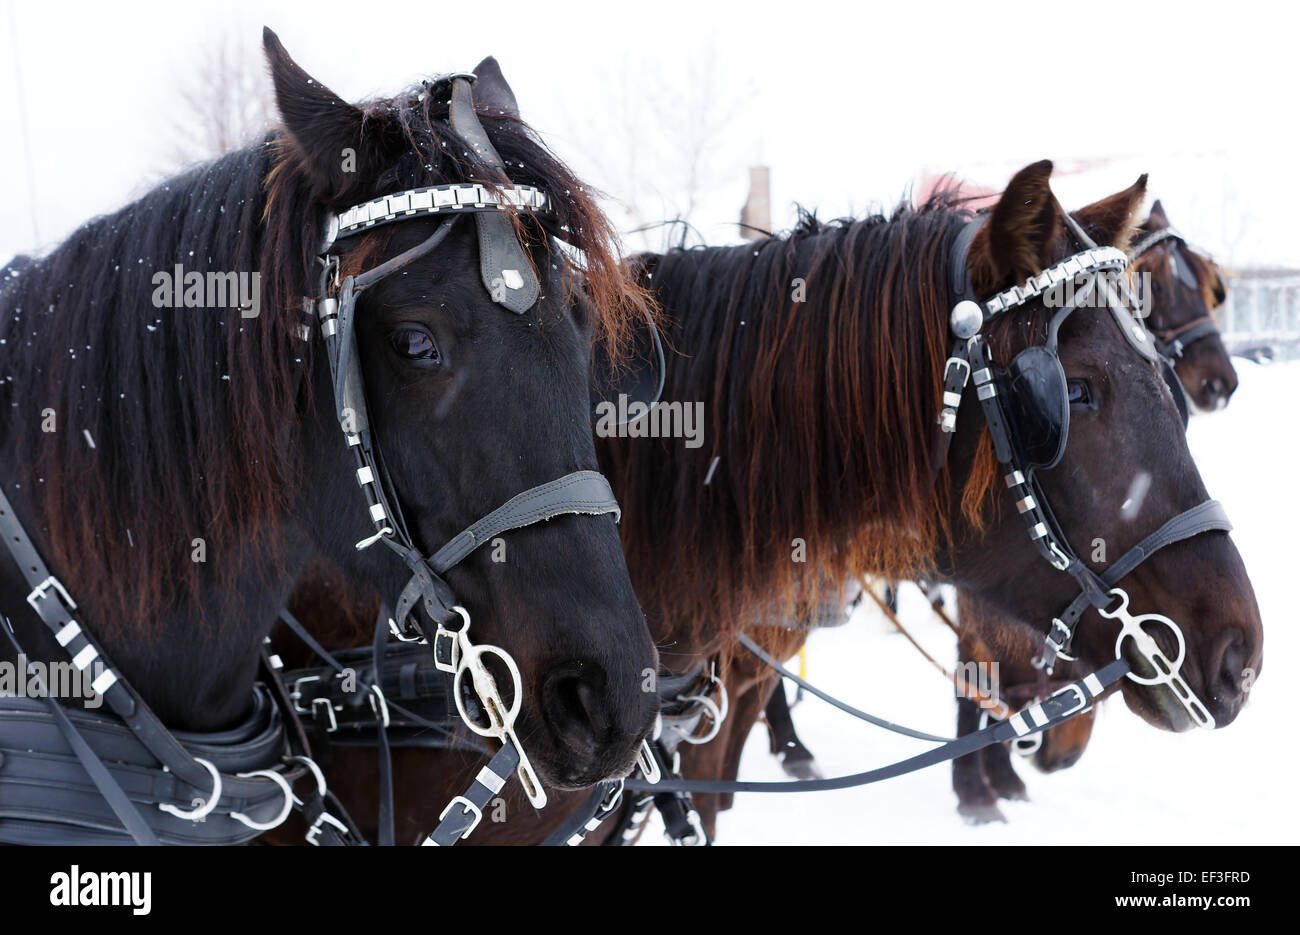 Team of Canadian horses in winter agility race - Stock Image